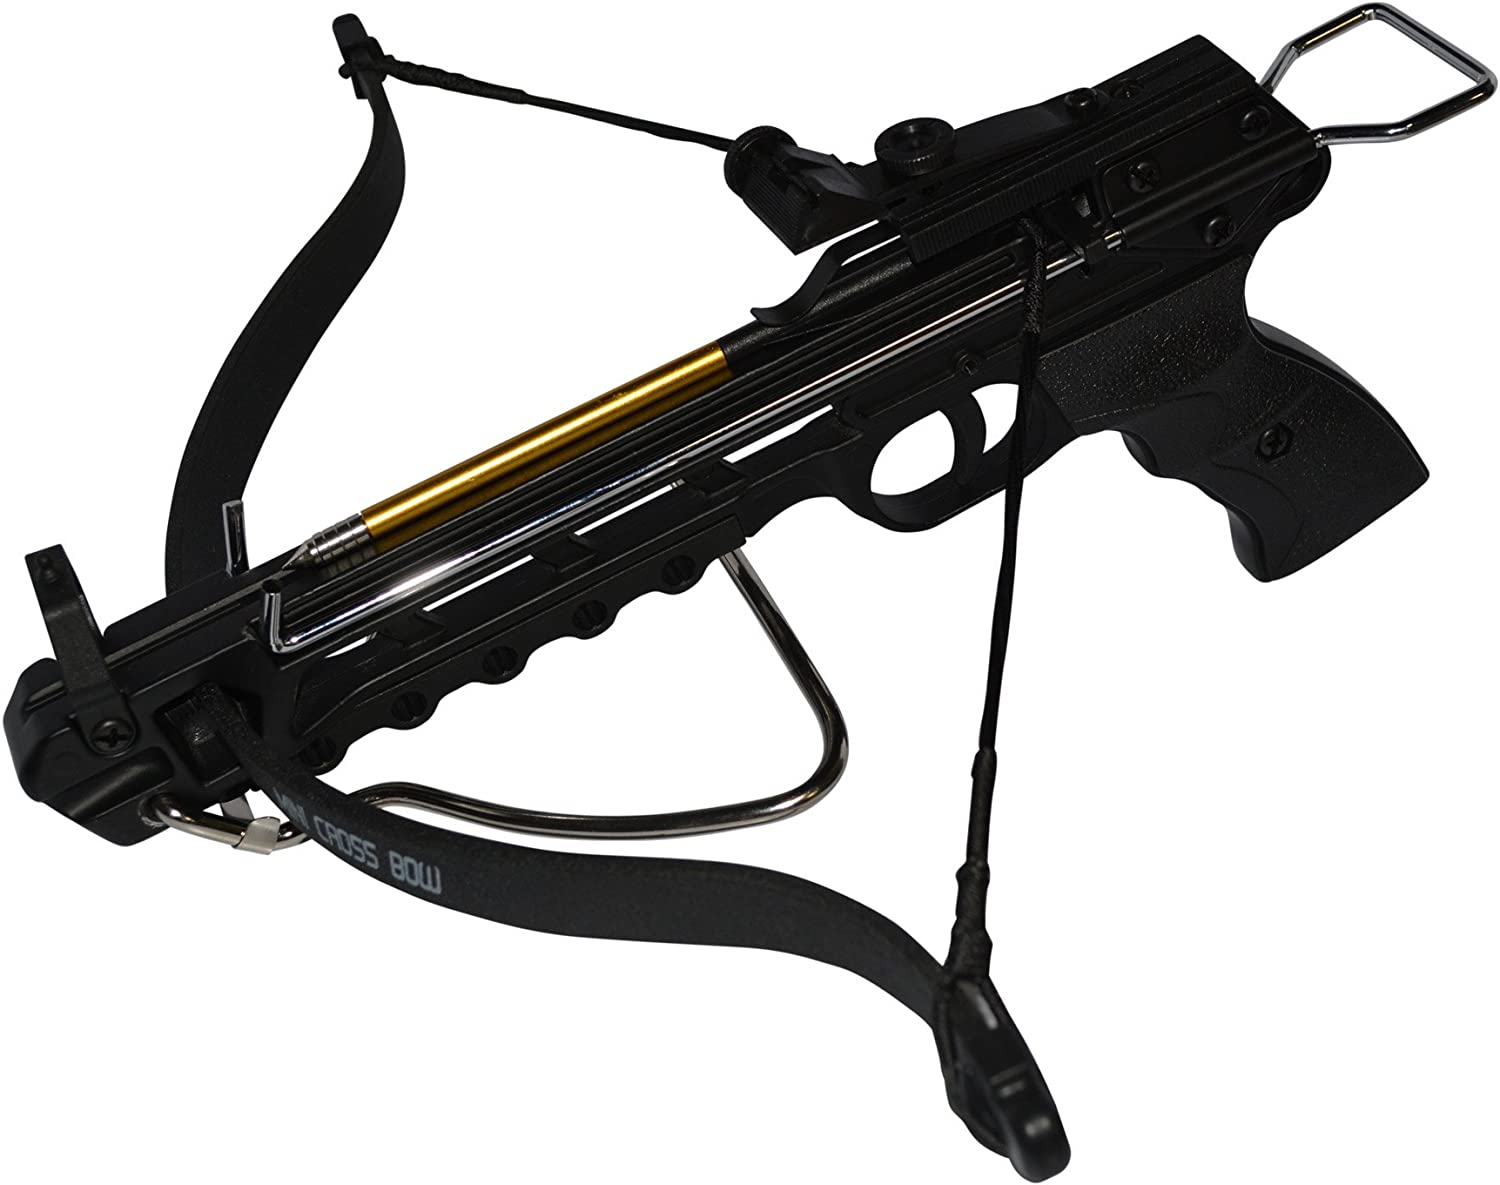 Amazon.com : Rogue River Tactical 80lbs 80 Pound Pistol Crossbow with Arrow  Holder w/27 Cross Bow Bolts Arrows … … : Sports & Outdoors